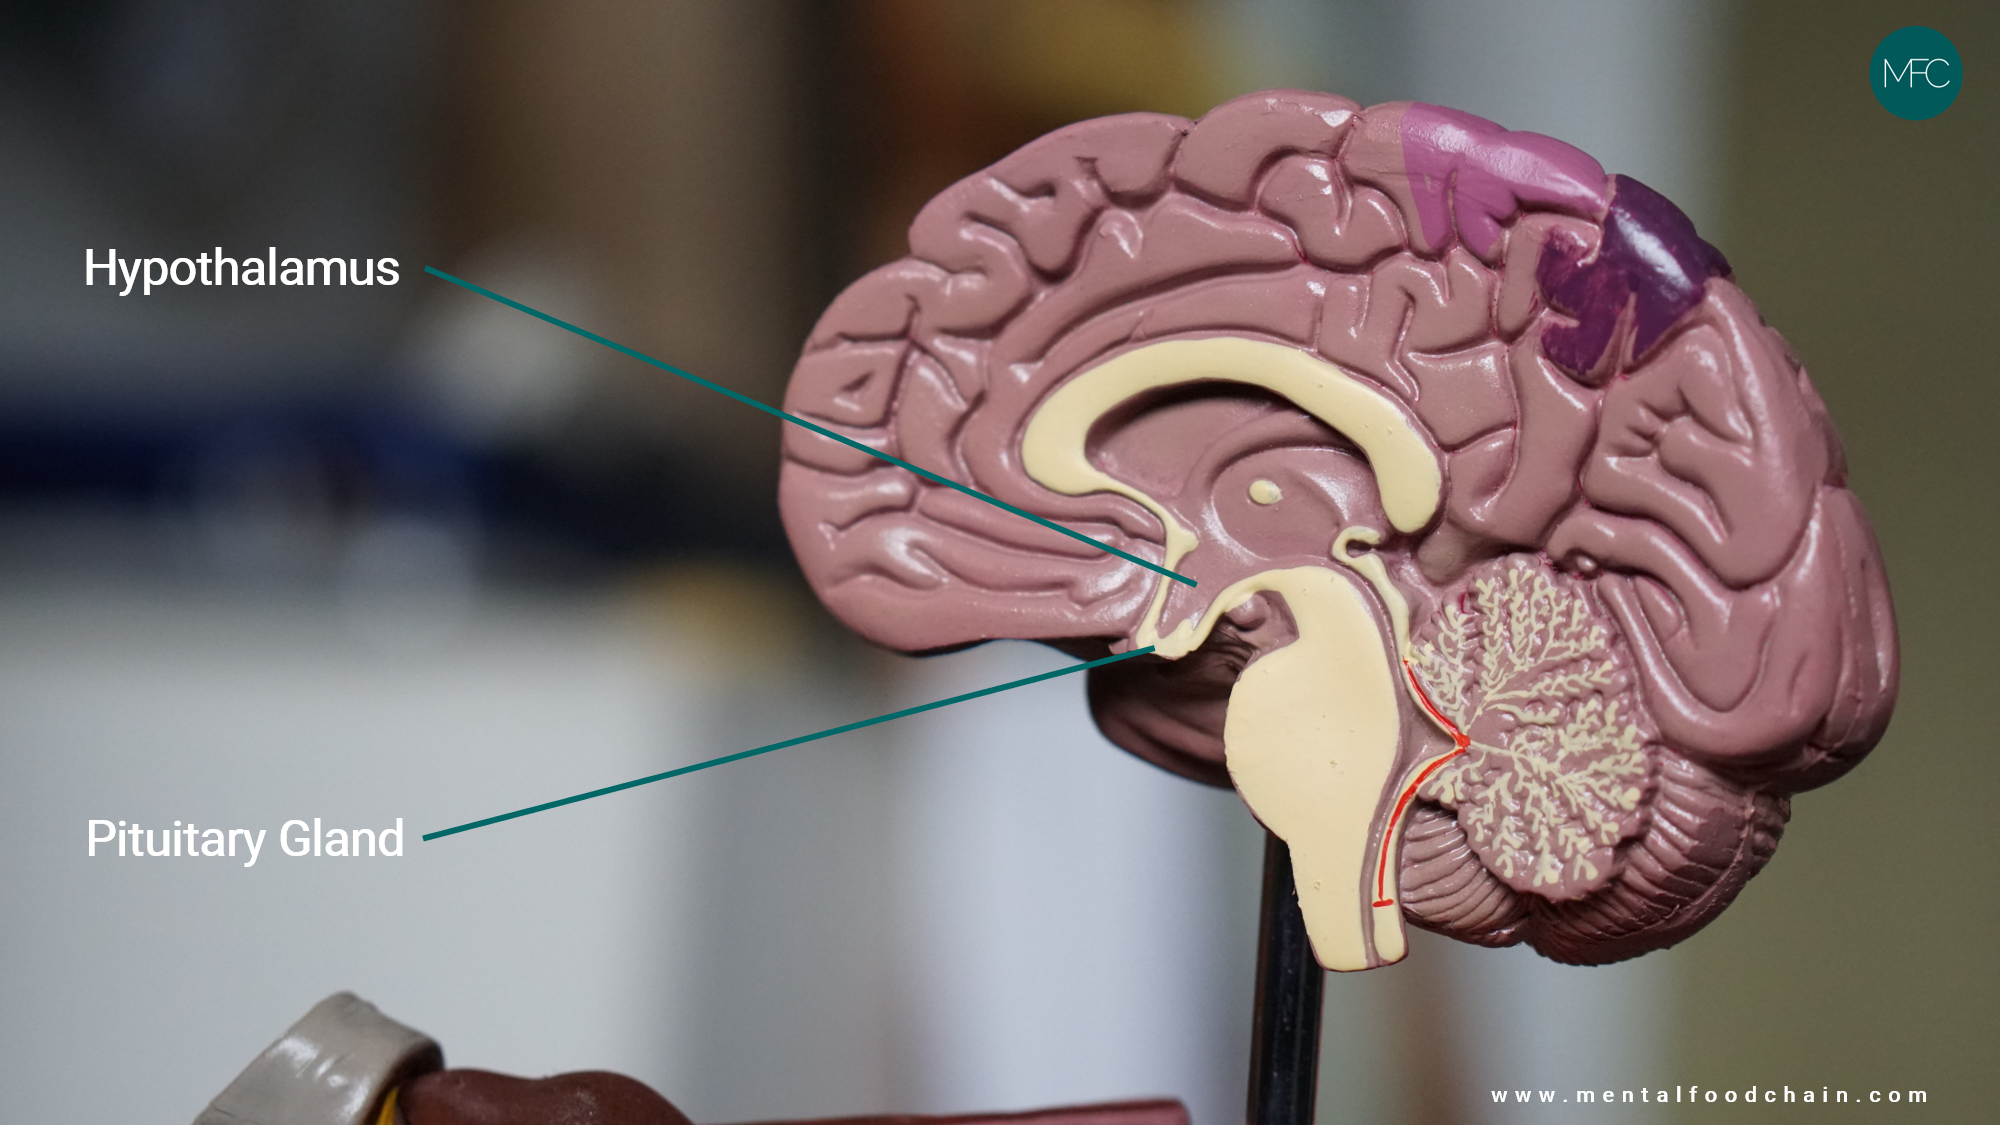 The hypothalamus is located above the pituitary gland in the brain